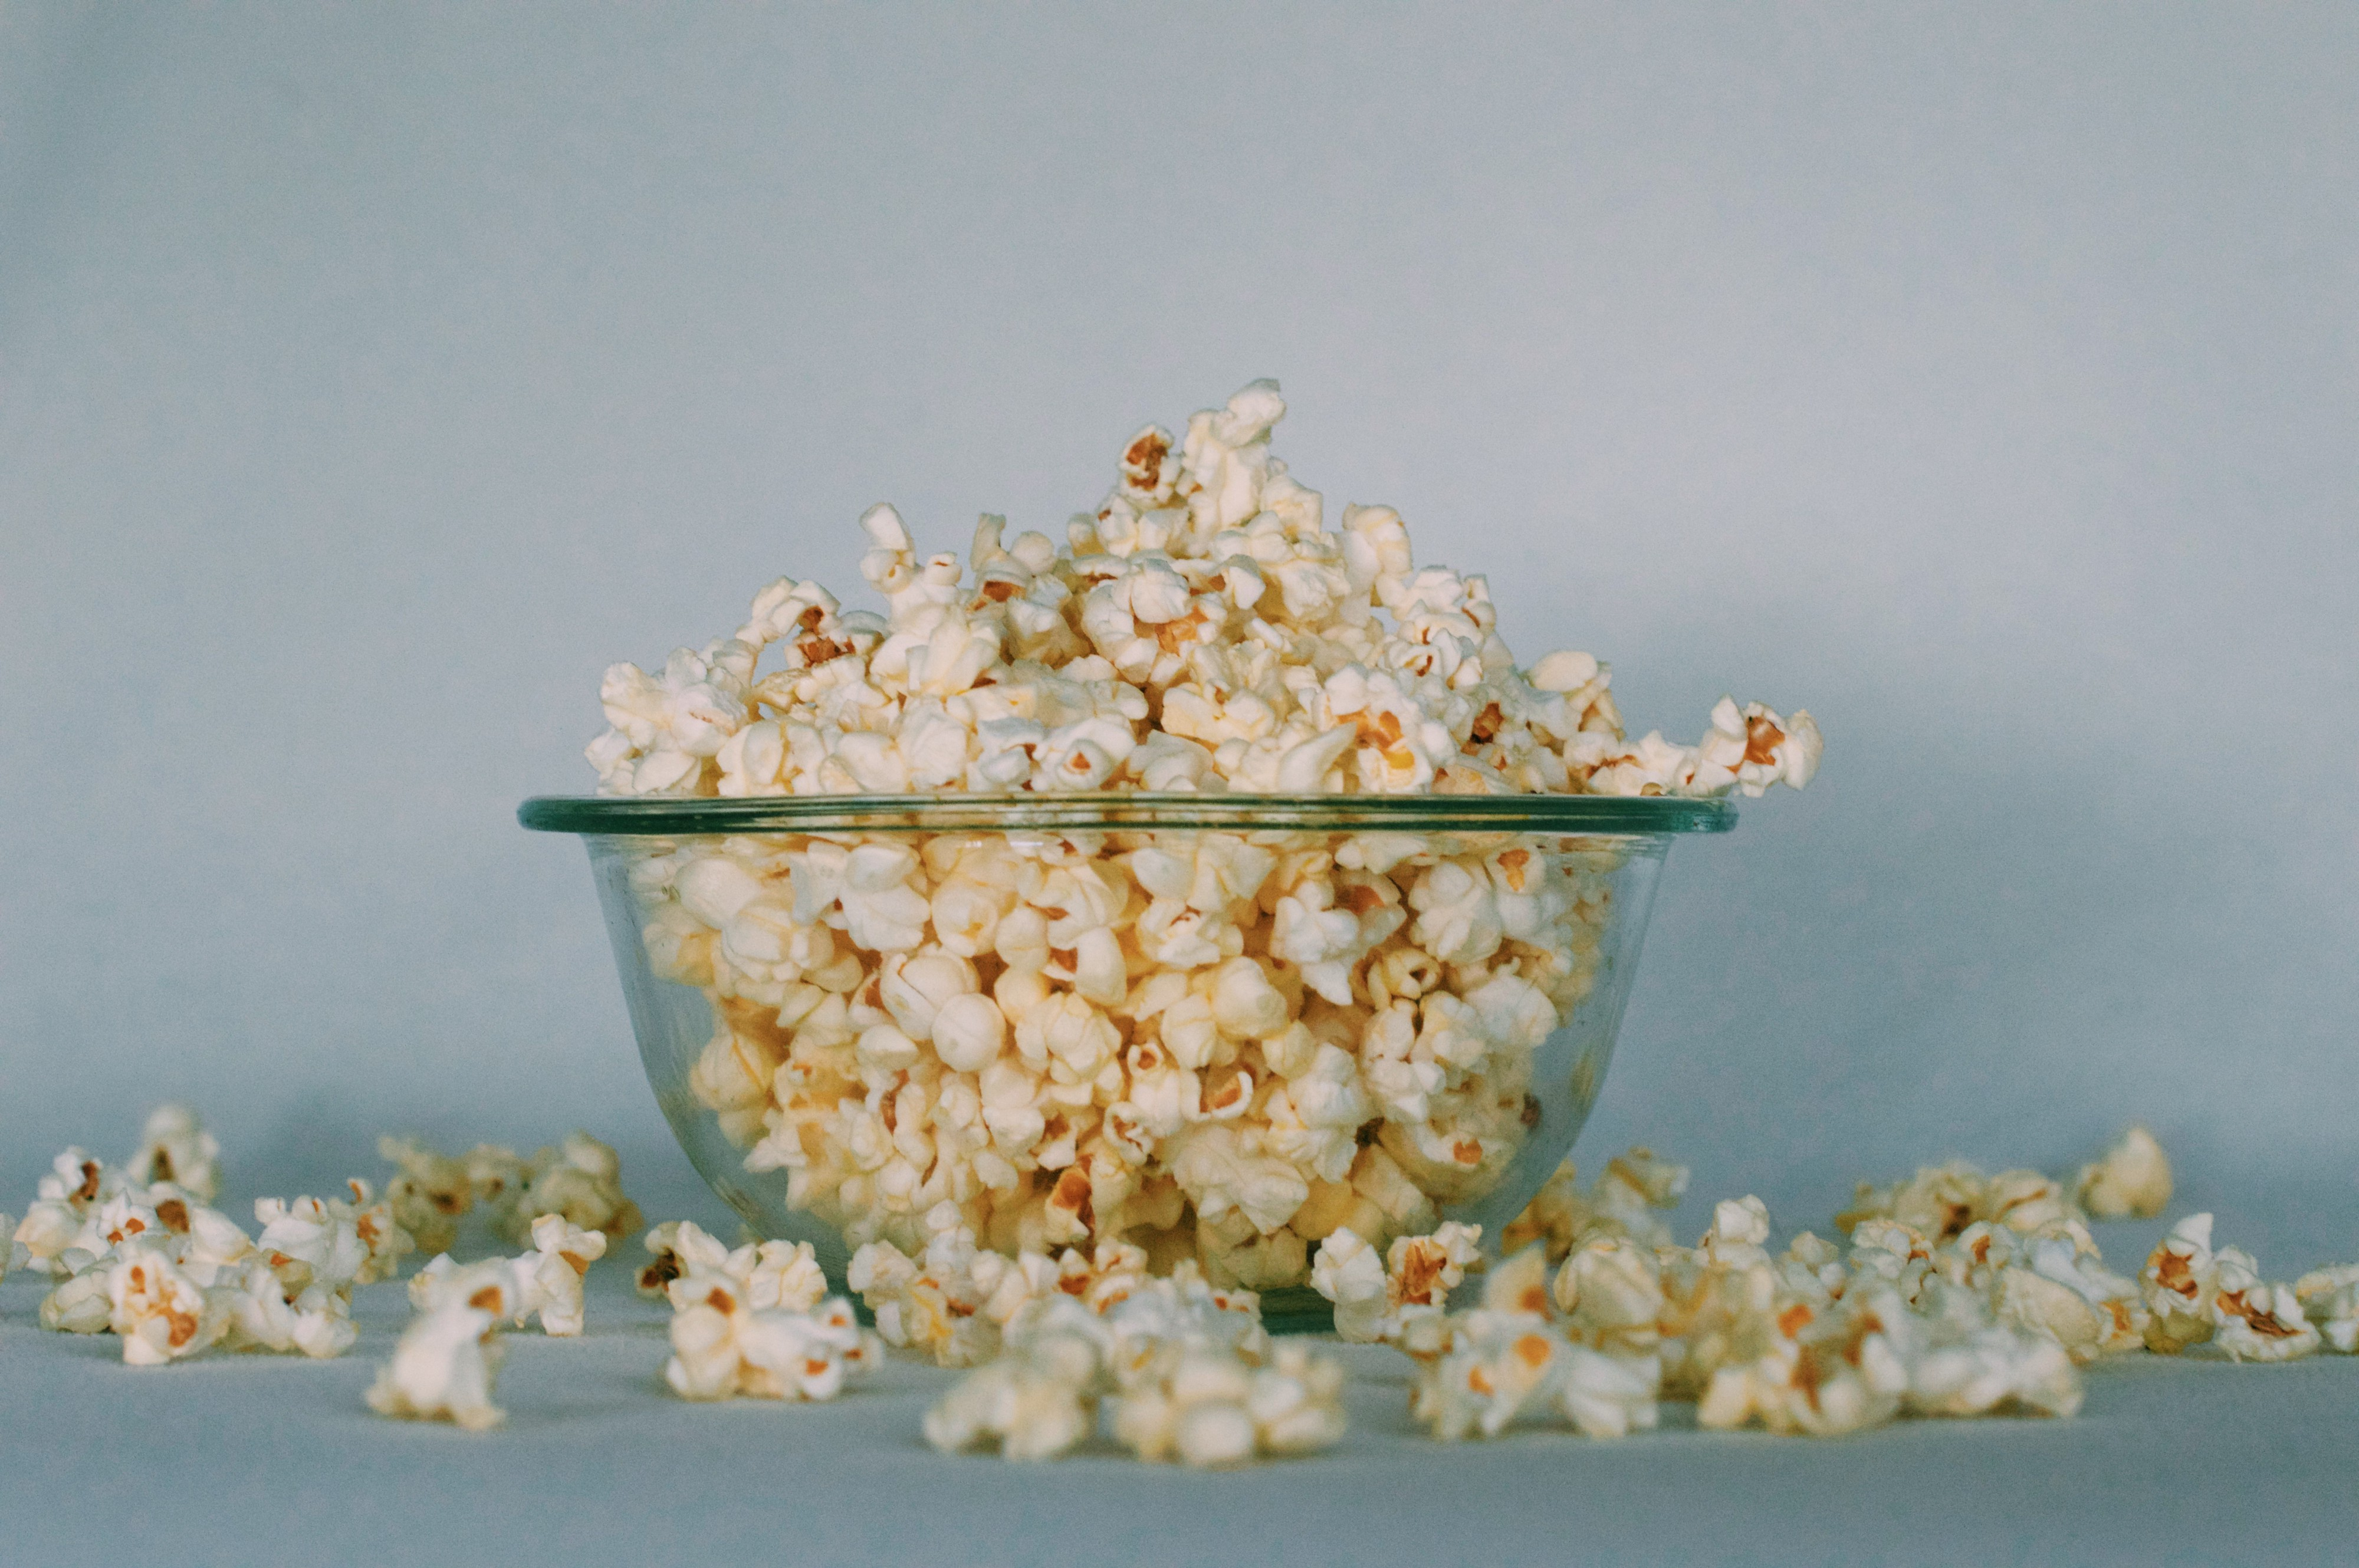 The Best Movies to Learn English According to Data Science